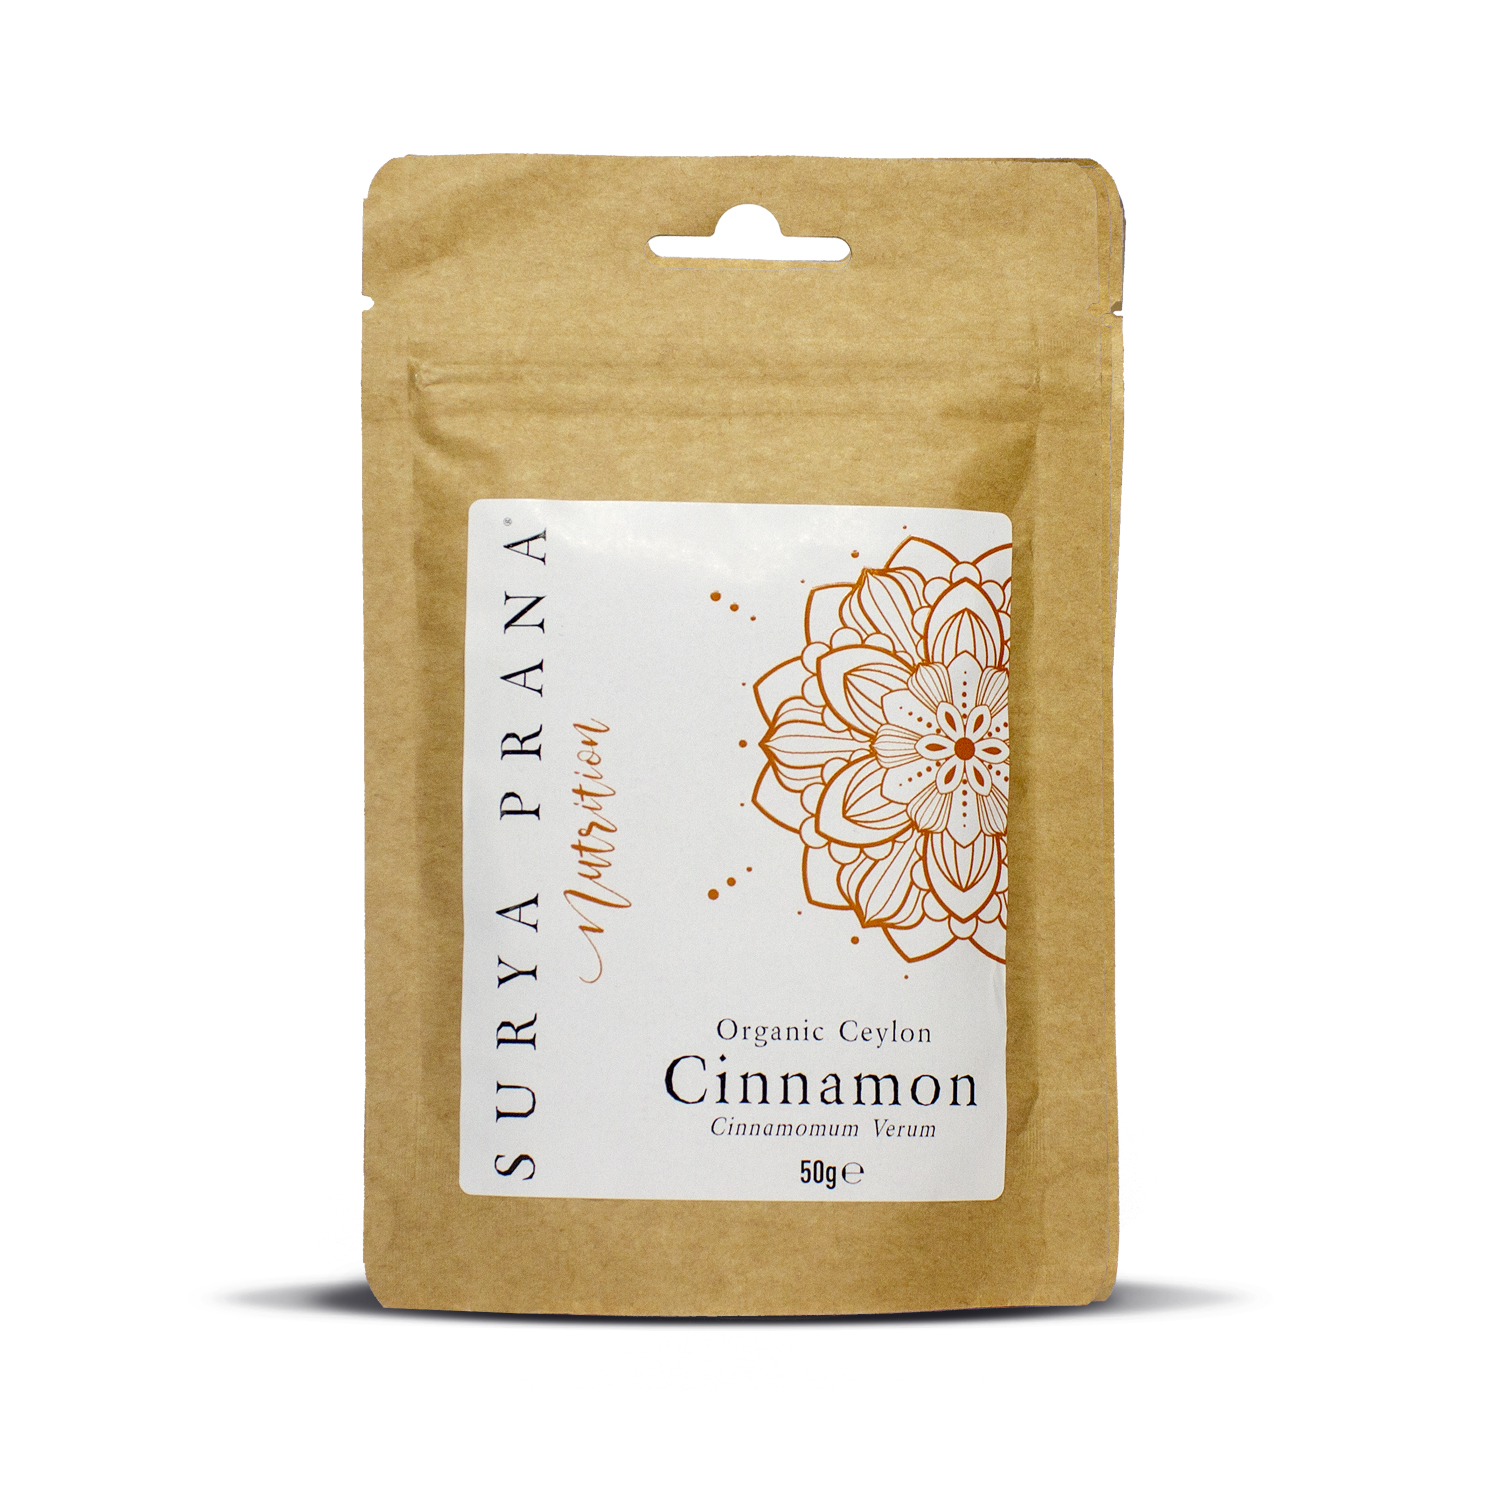 Organic Ceylon Cinnamon 50g (Currently Unavailable - Long Term Out of Stock)